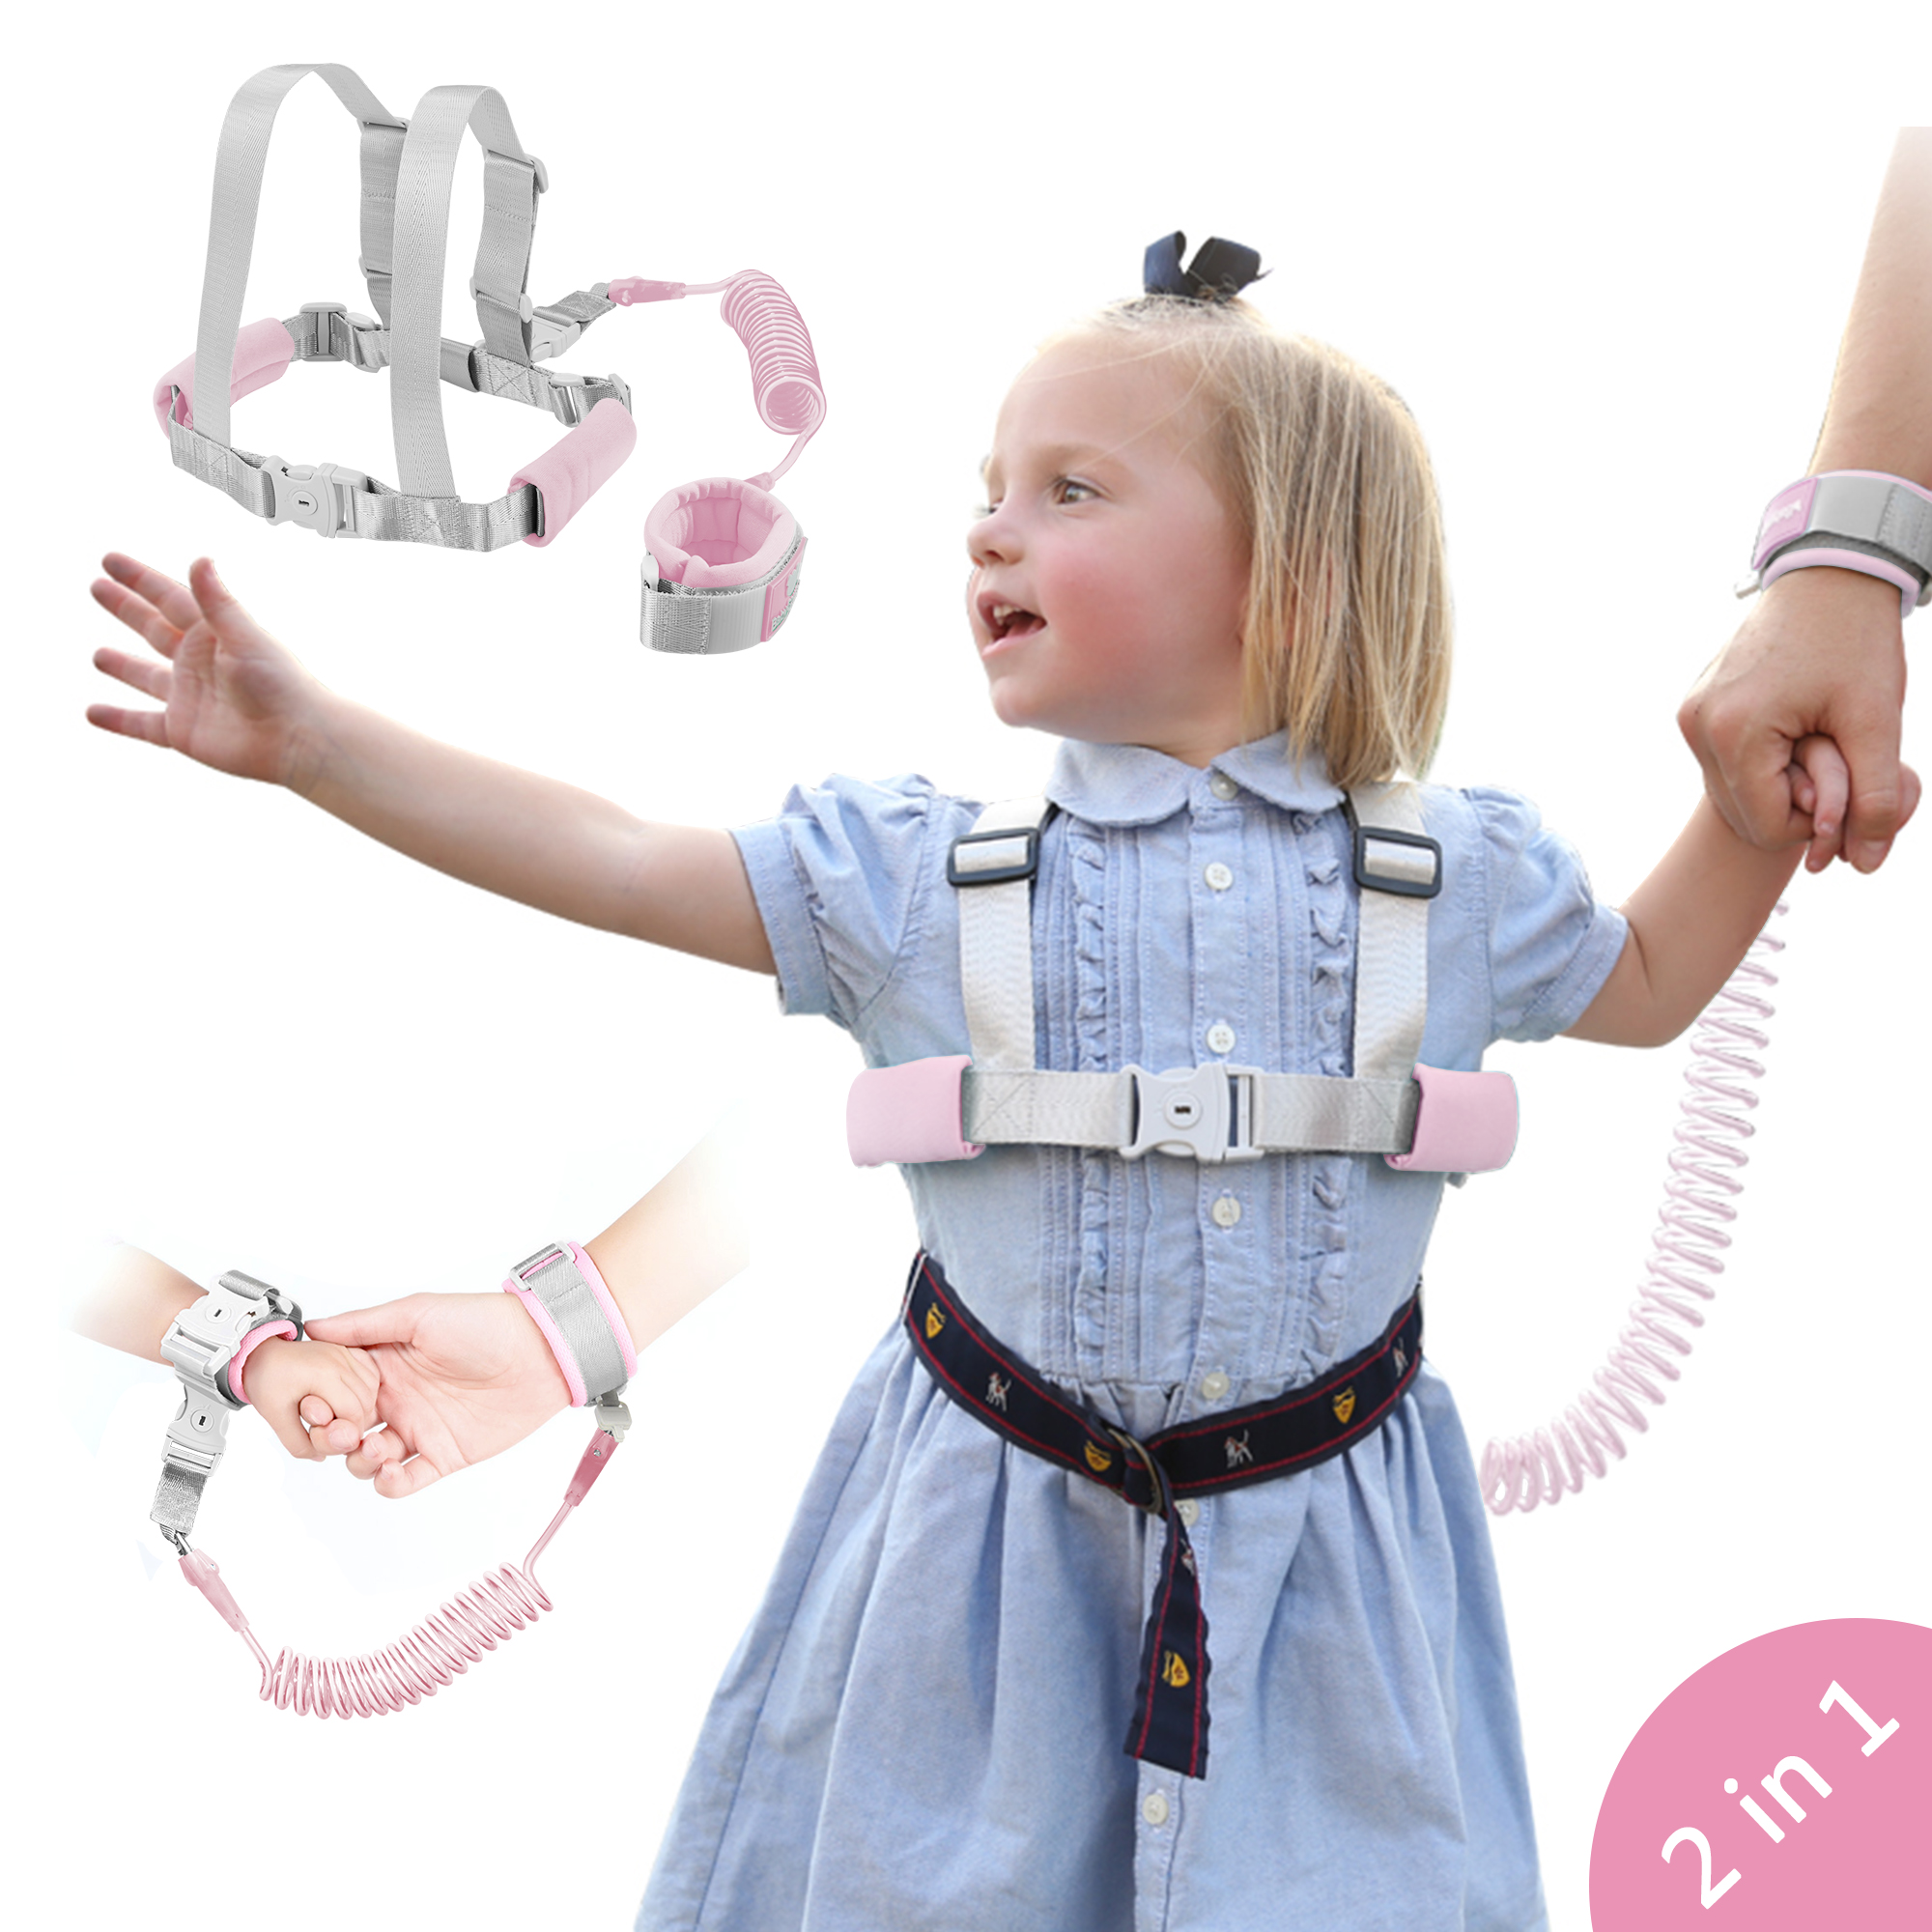 Kids Toddler Harness Walking Leash Child Anti Lost Wrist Link Child Safety Wrist